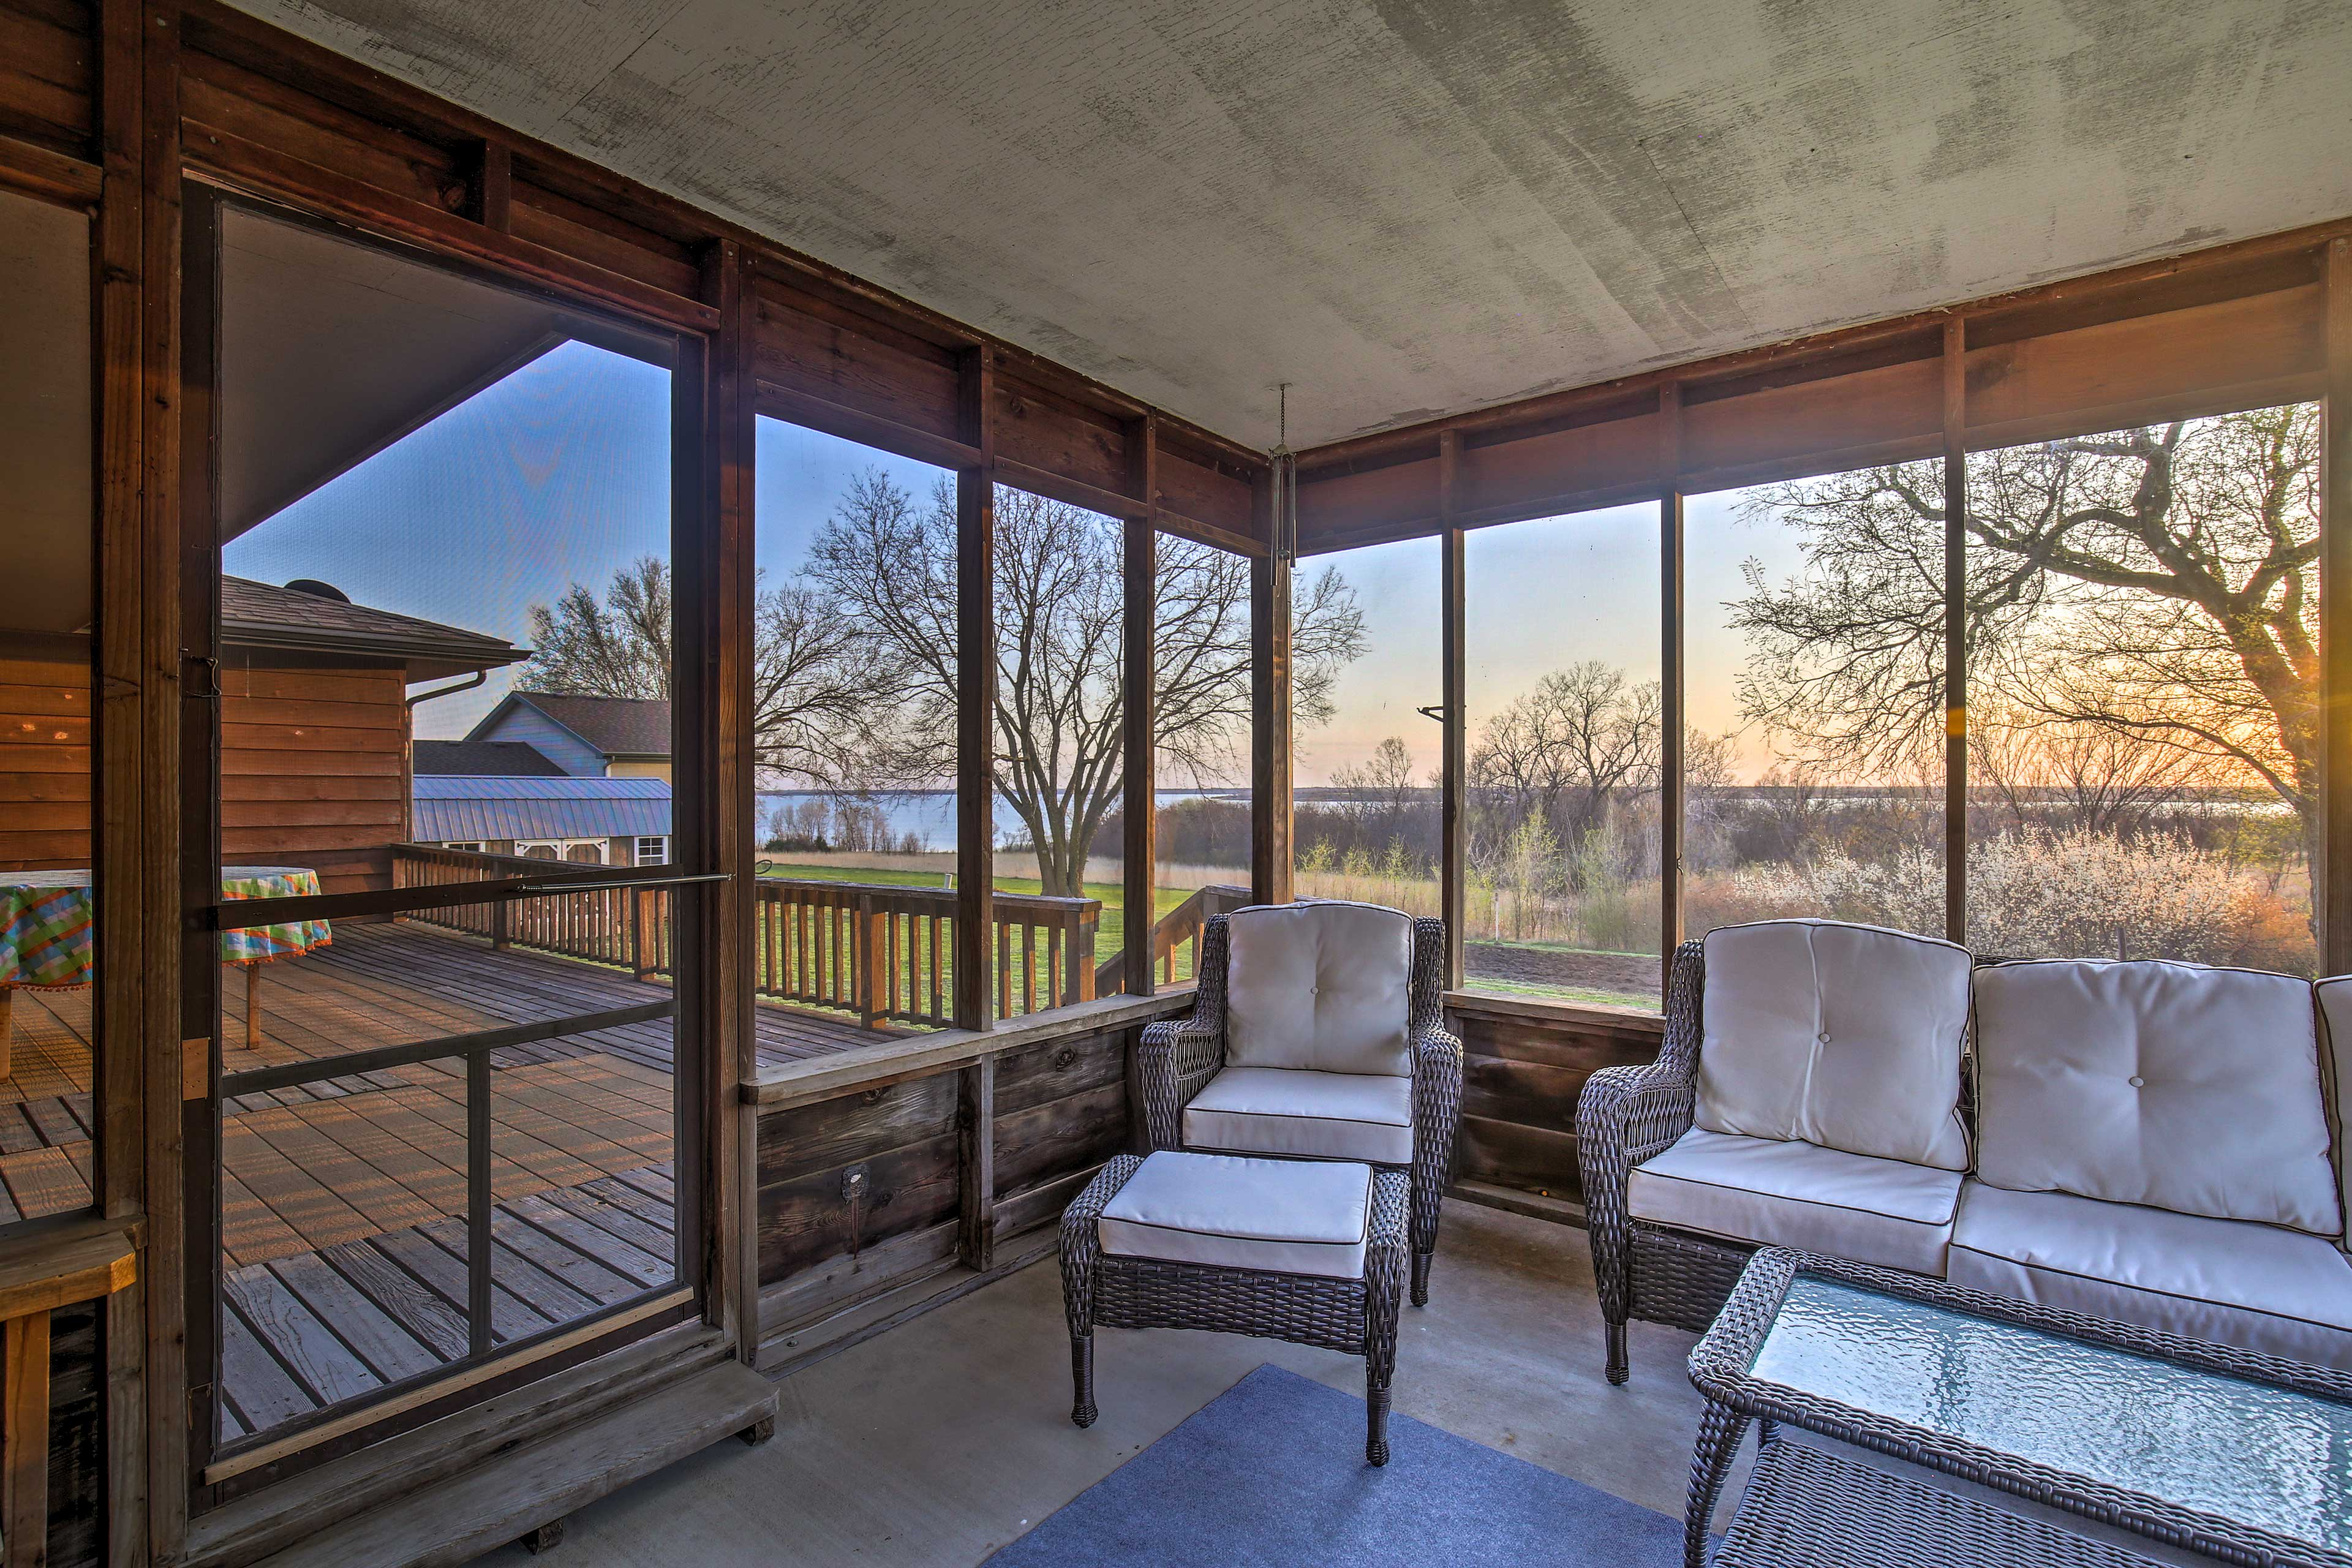 The porch overlooks the grassy backyard and the lake.